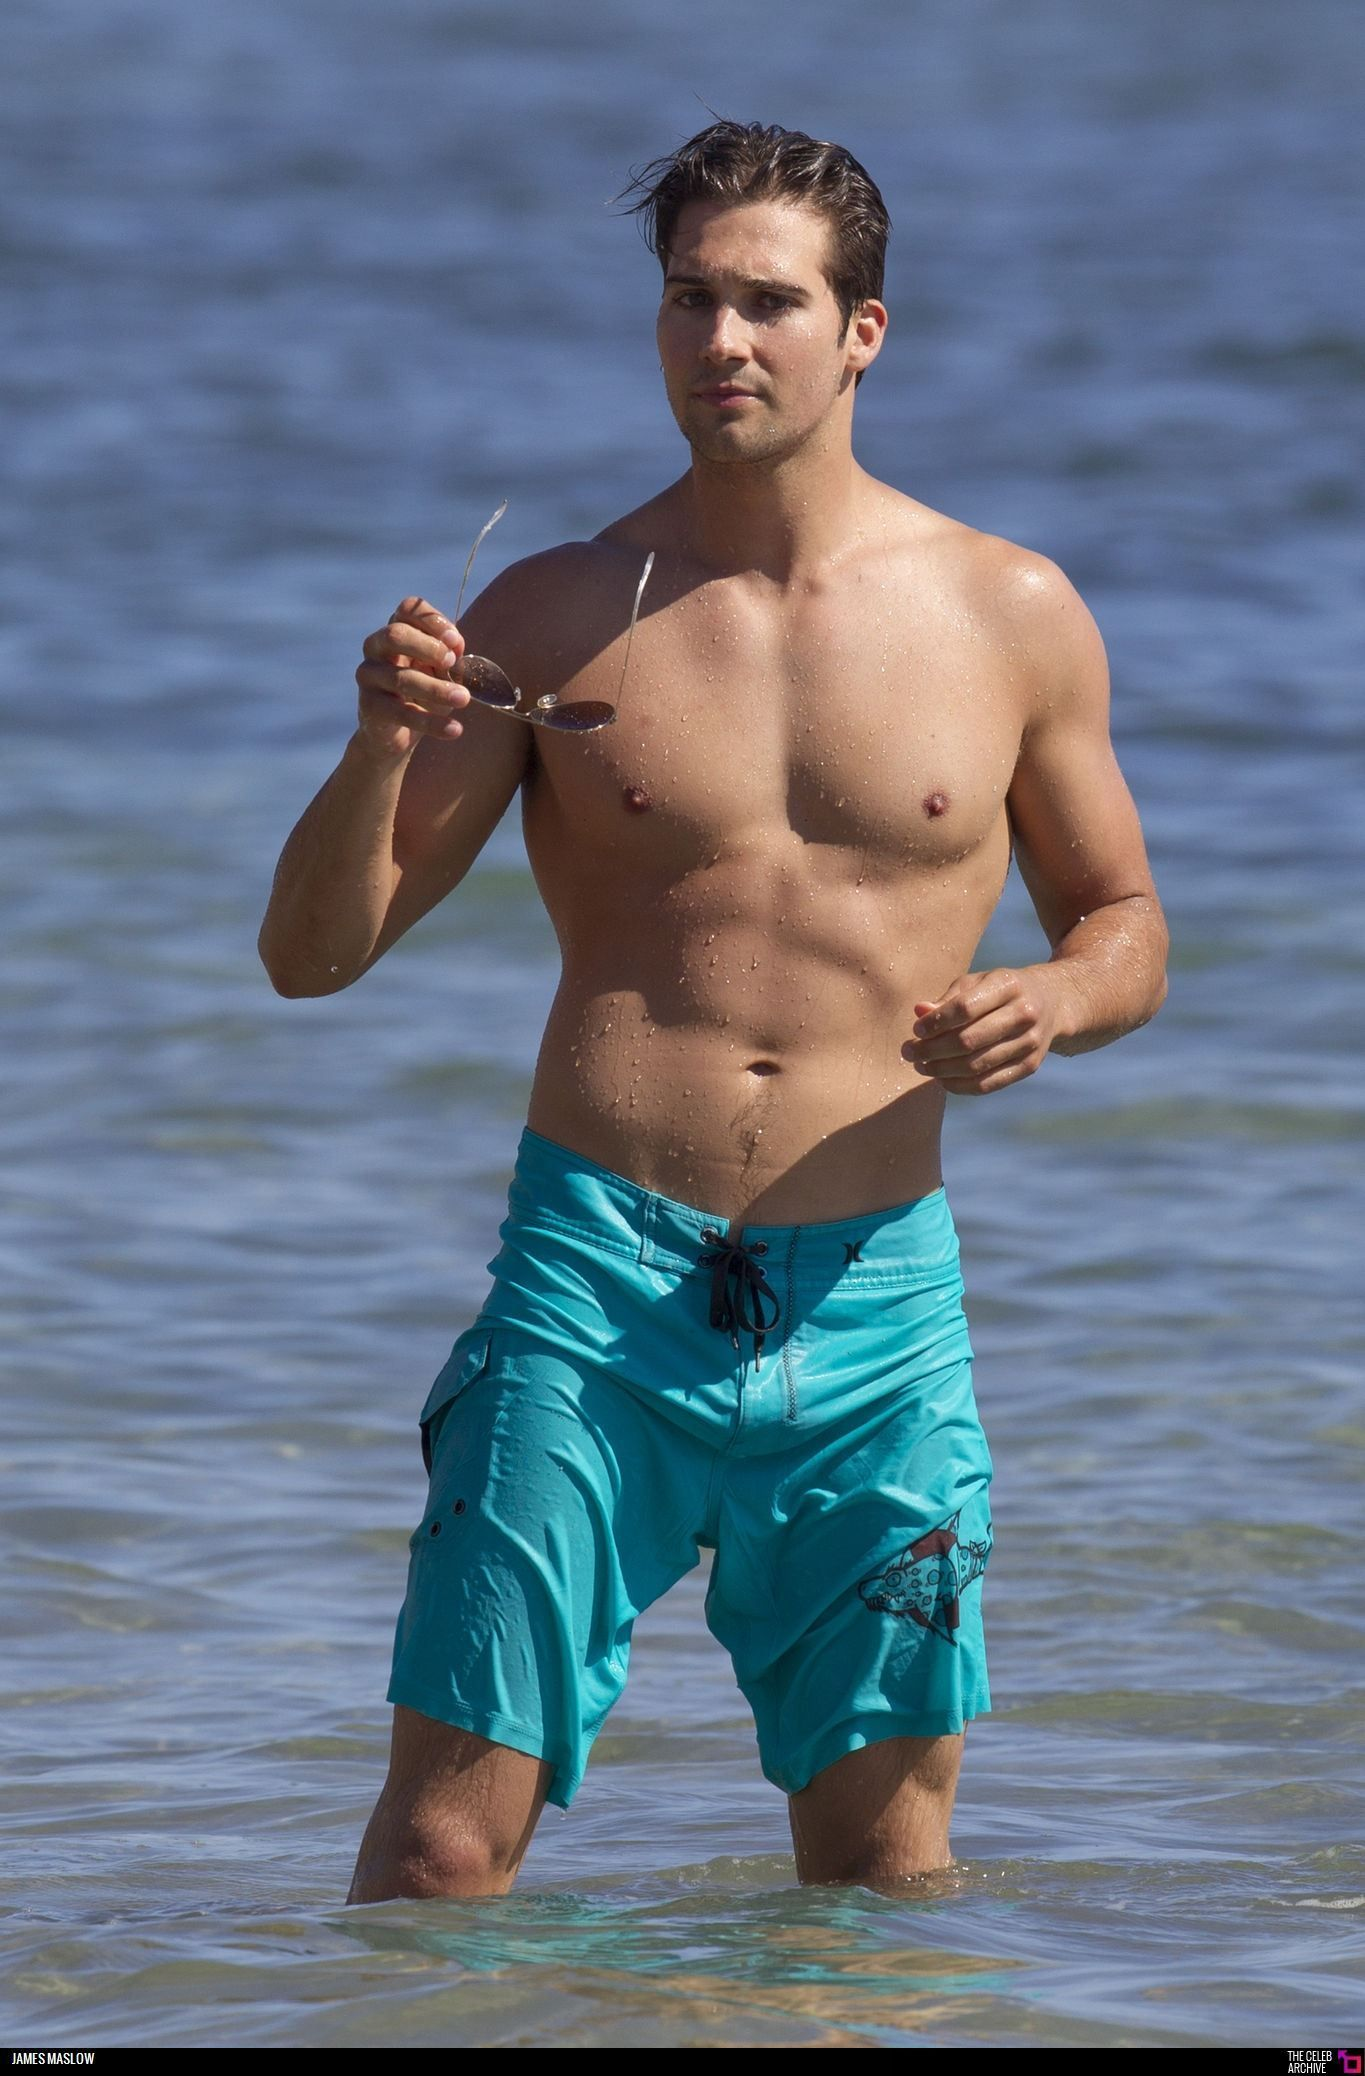 James maslow bulge you thanks